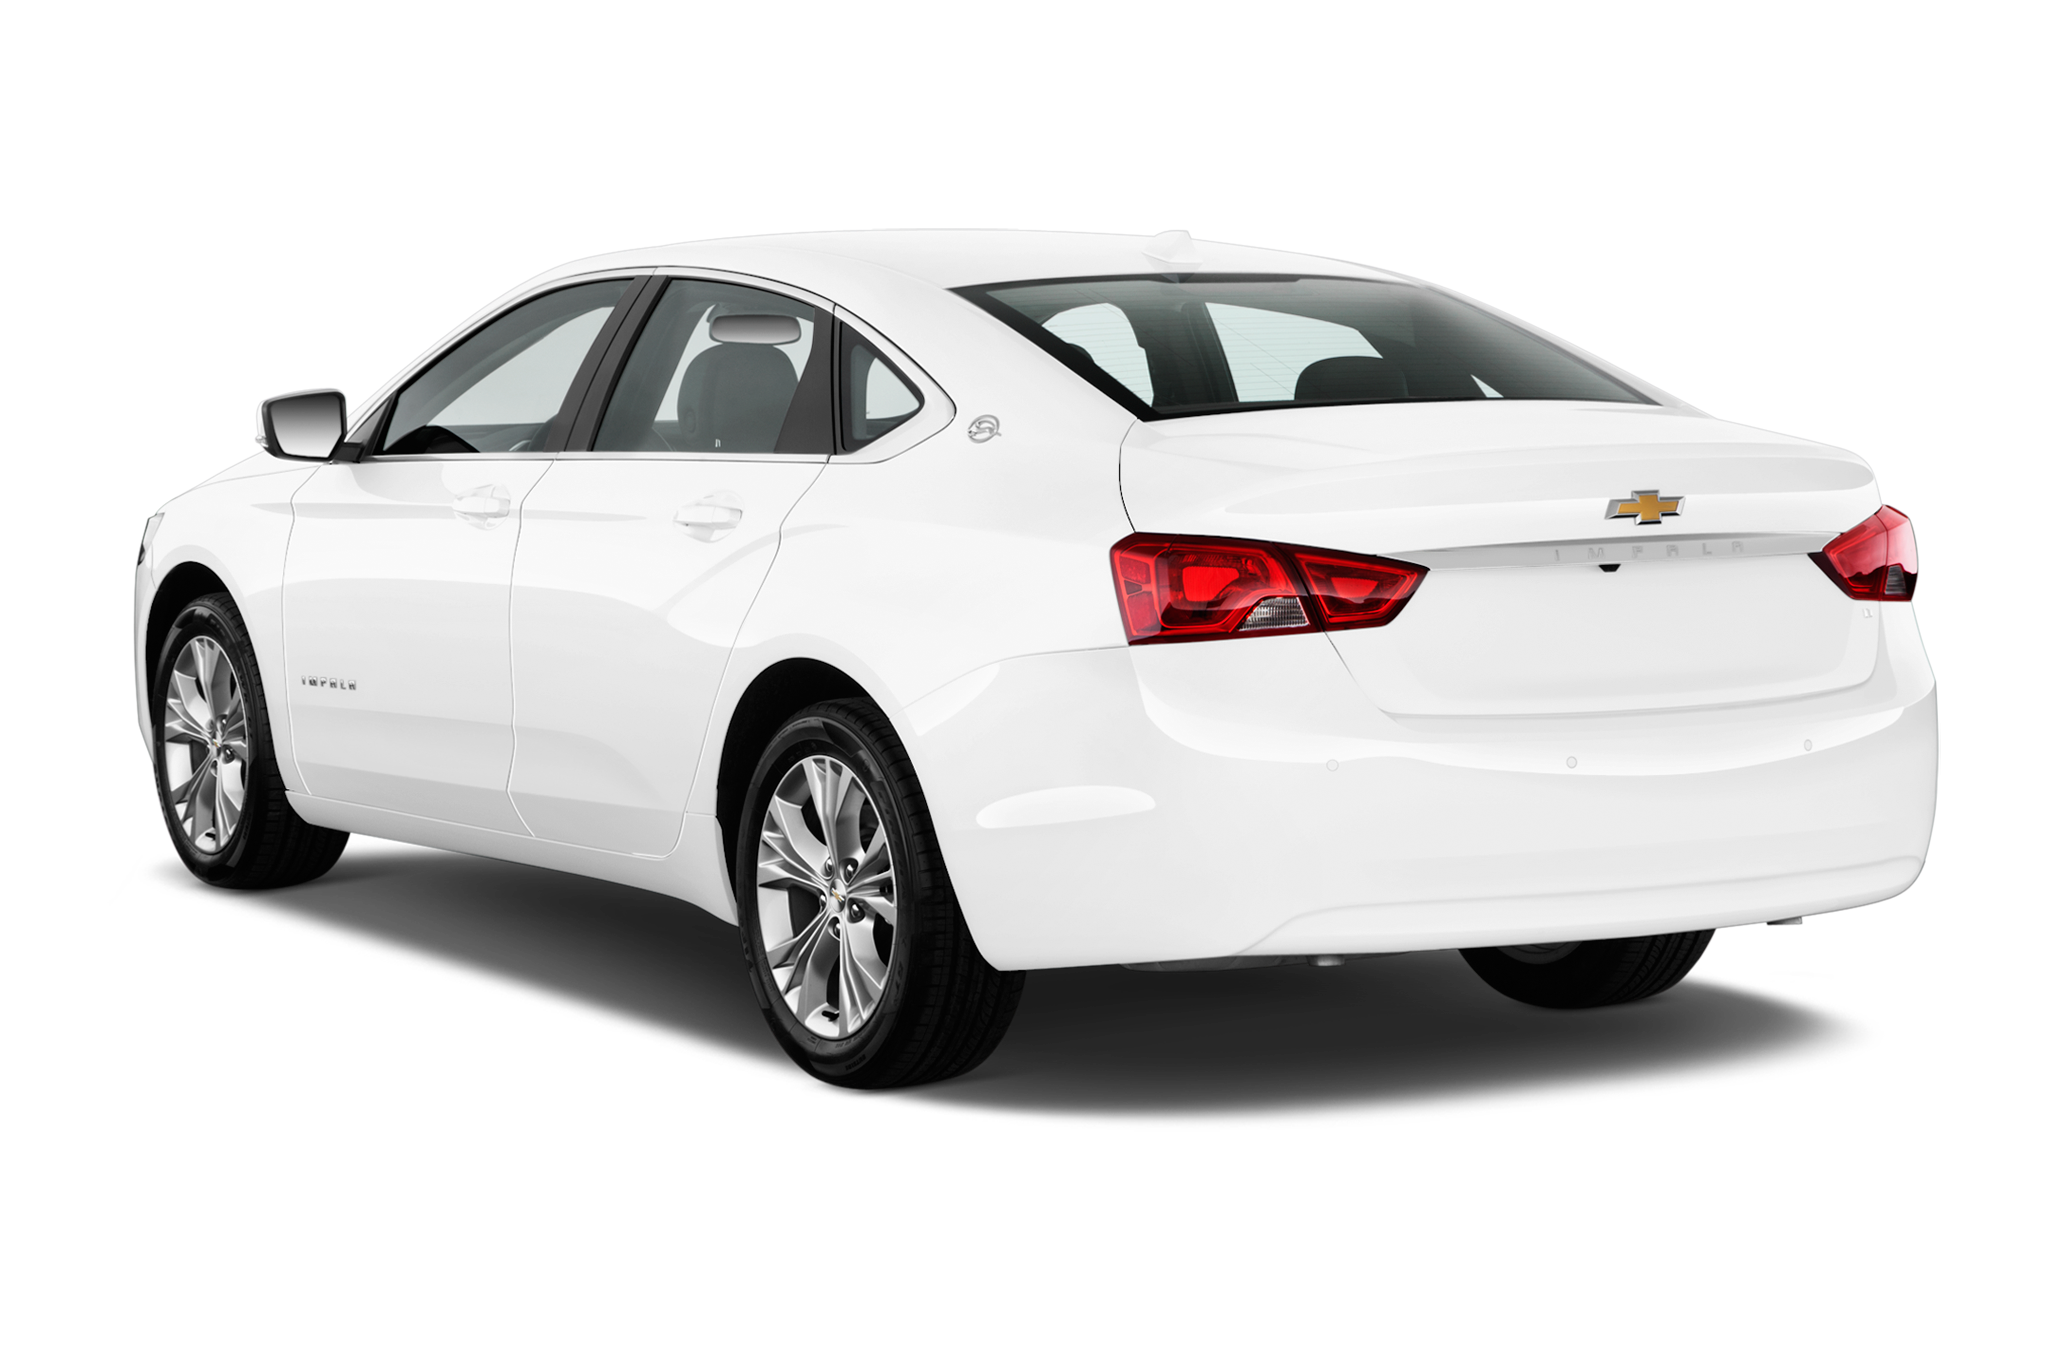 2016 Chevrolet Impala Cng 3Lt >> Chevrolet Impala Cng 3lt 2015 International Price Overview